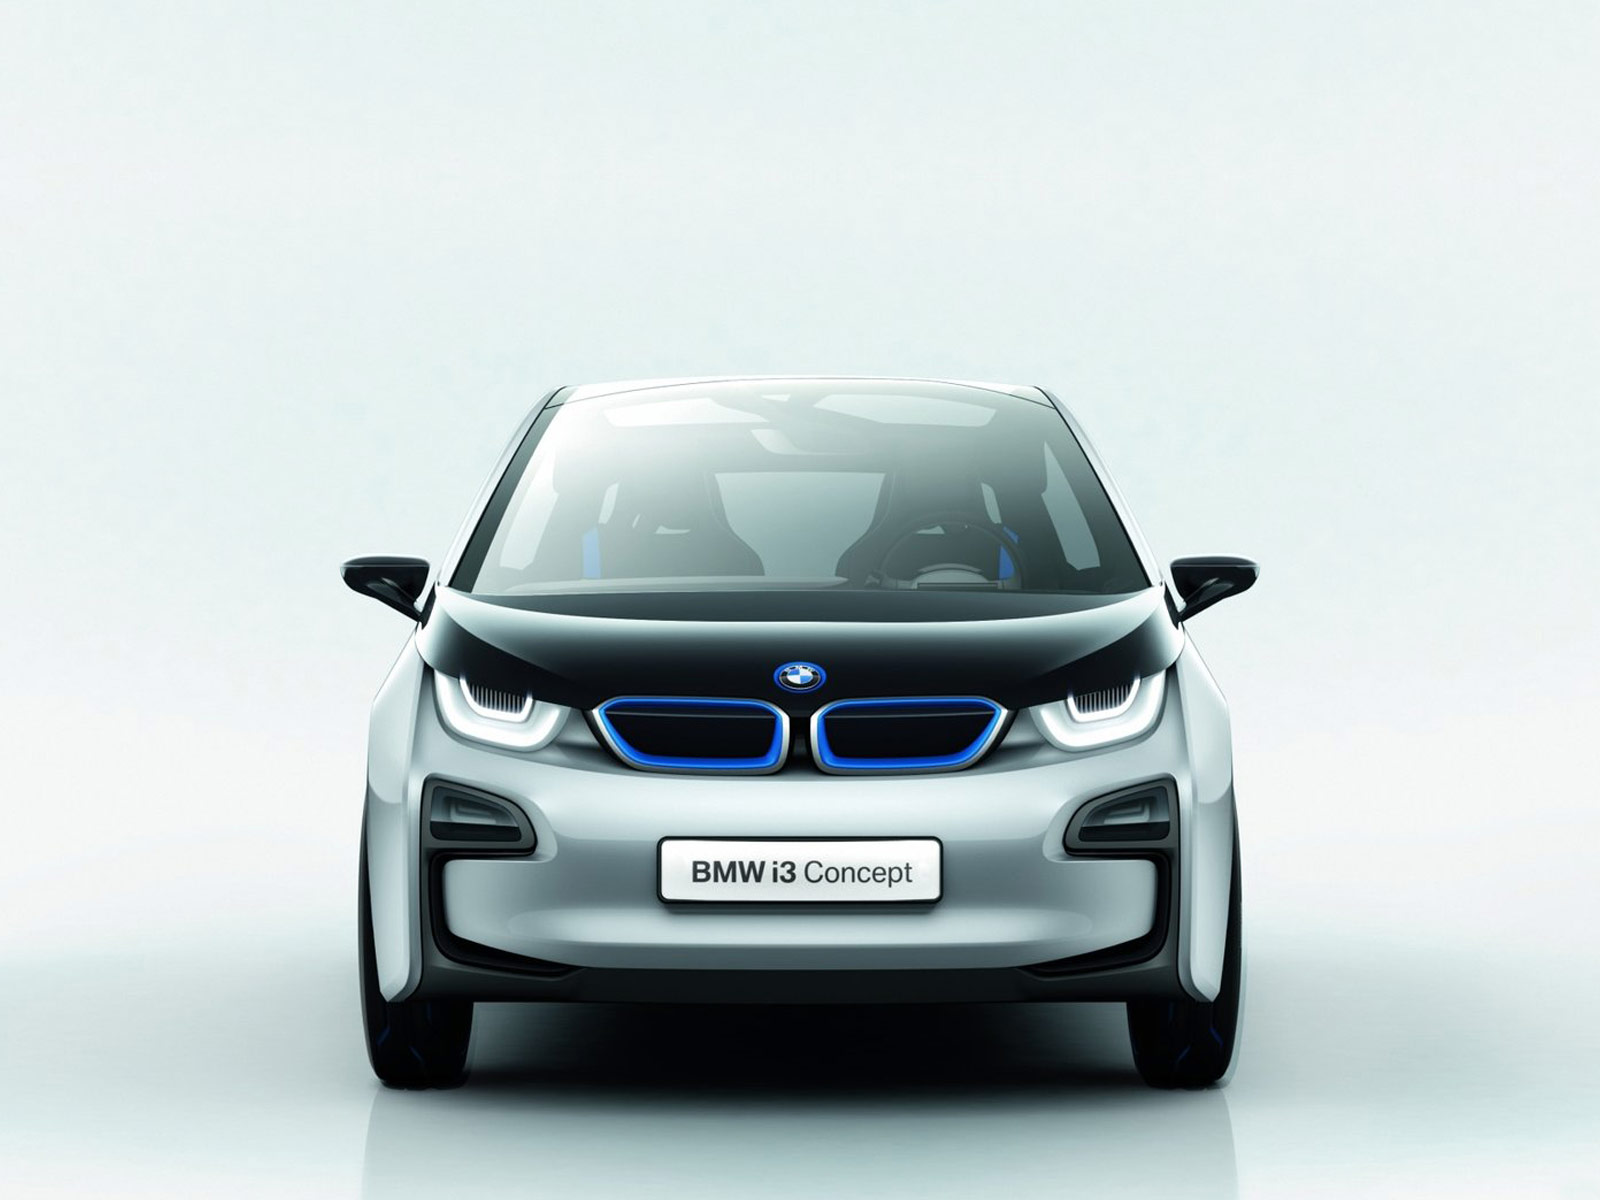 2011 BMW i3 Concept car wallpapers. Accident lawyers info